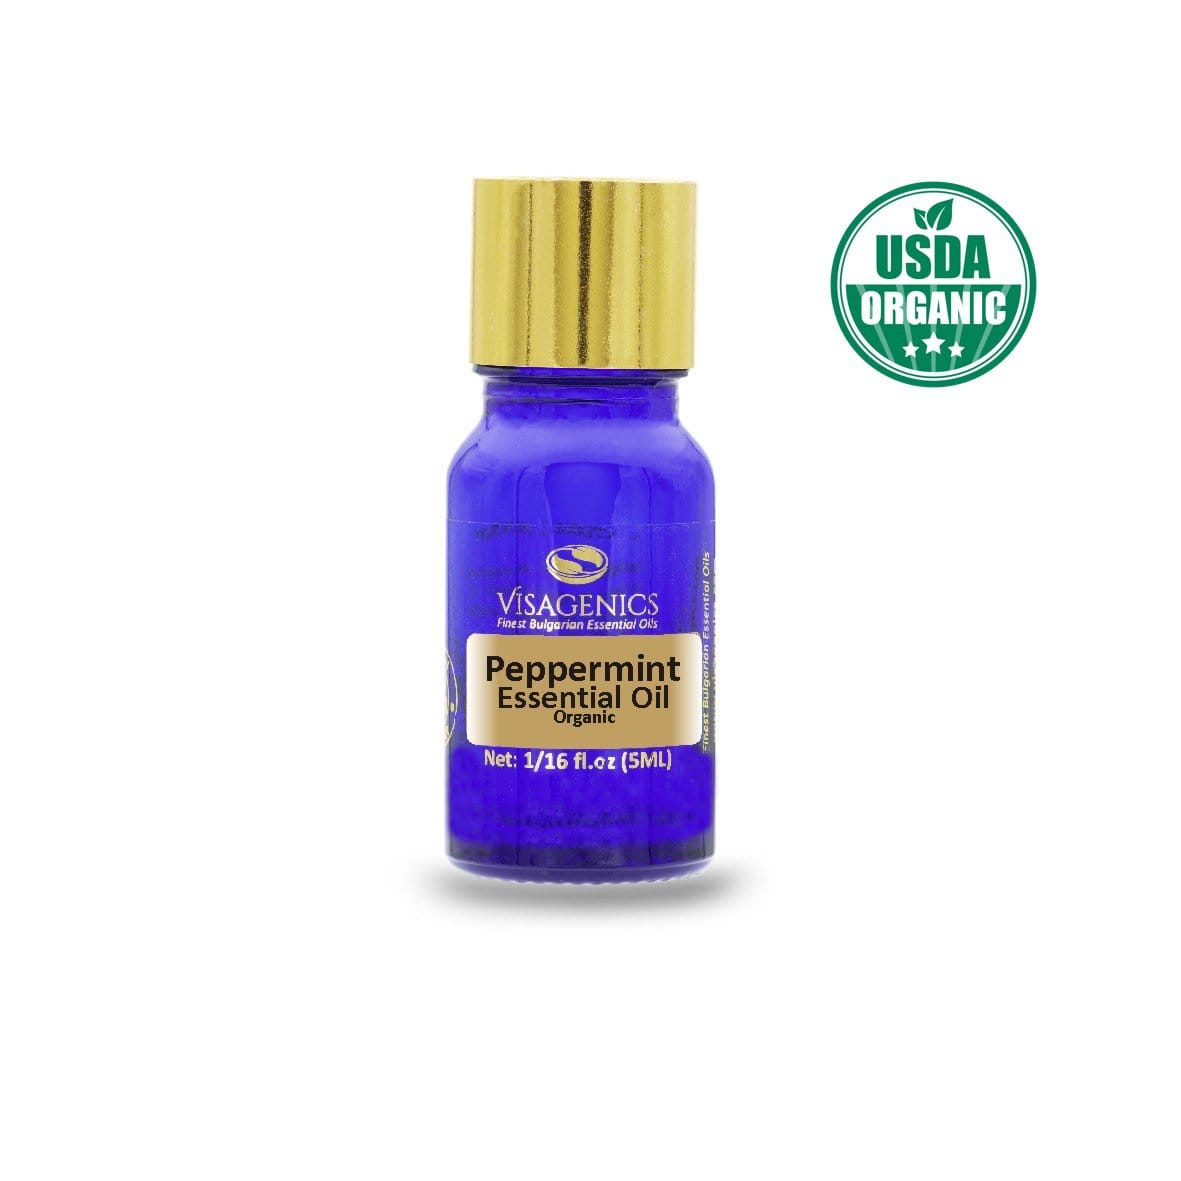 Peppermint Essential Oil | USDA Certified Organic